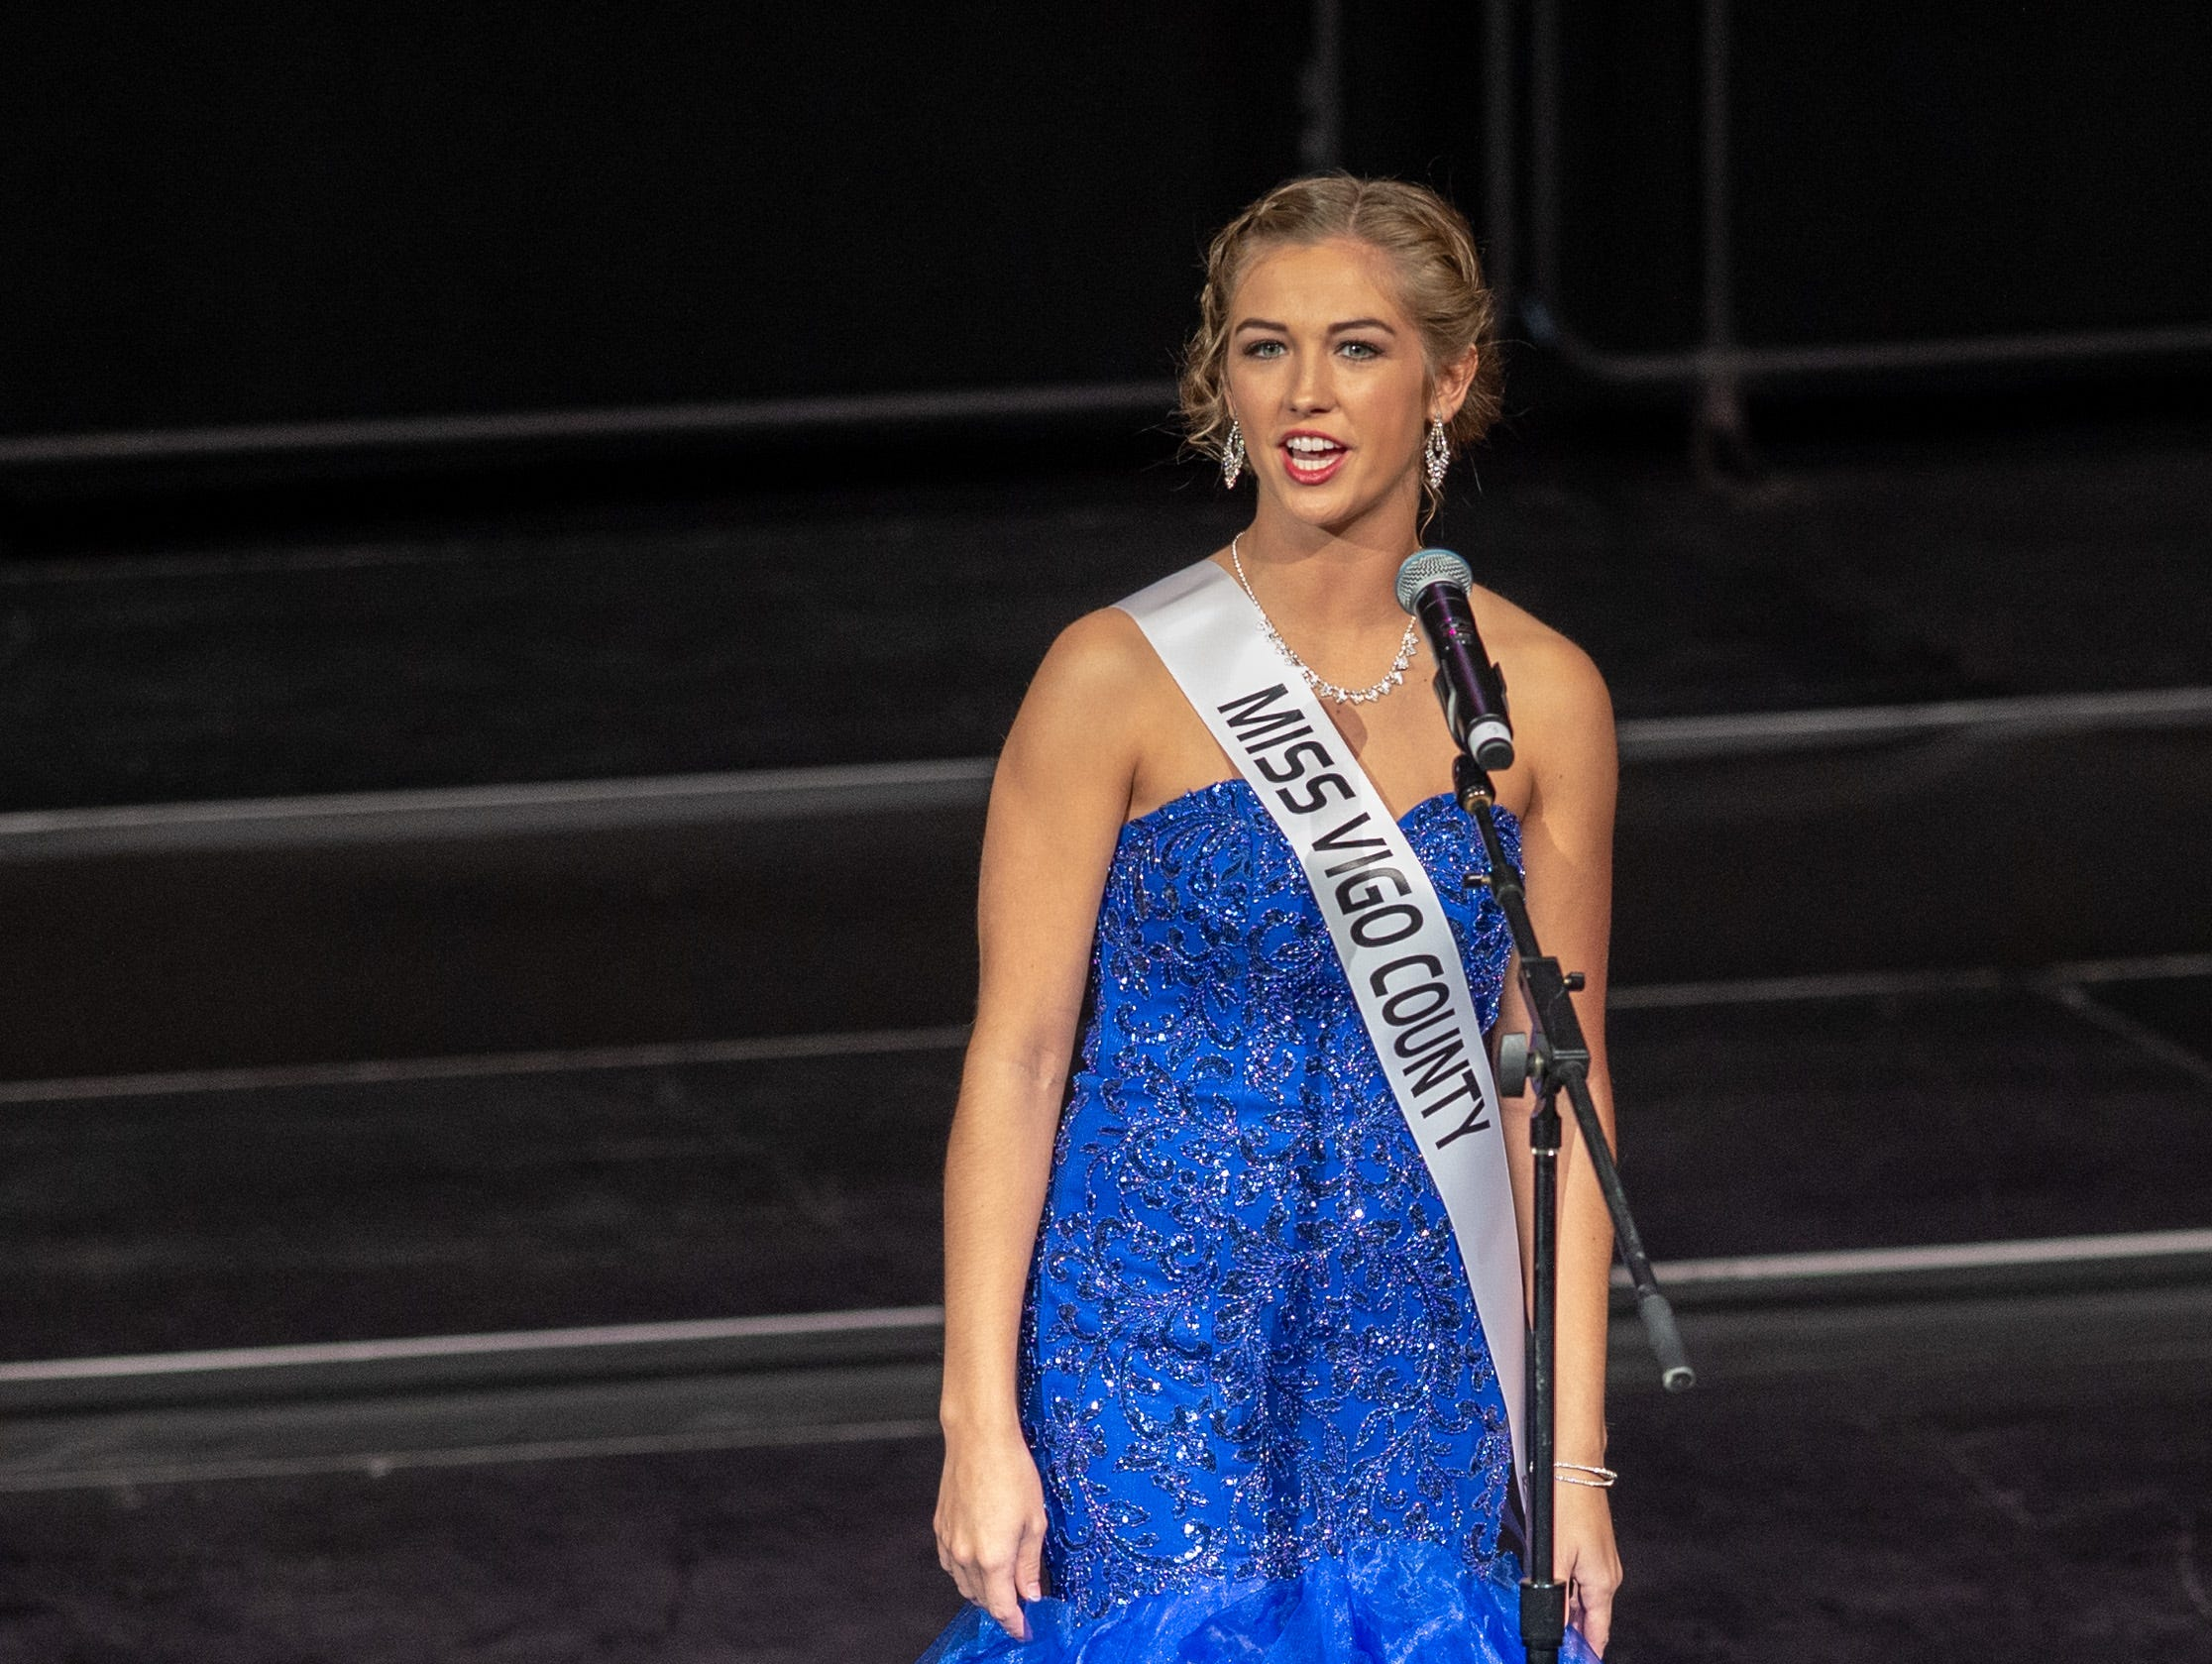 Miss Vigo County, Taylor Guevara, introduces herself during the 61st Indiana State Fair Queen Pageant at the Indiana State Fairgrounds in Indianapolis on Sunday, Jan. 6, 2019.